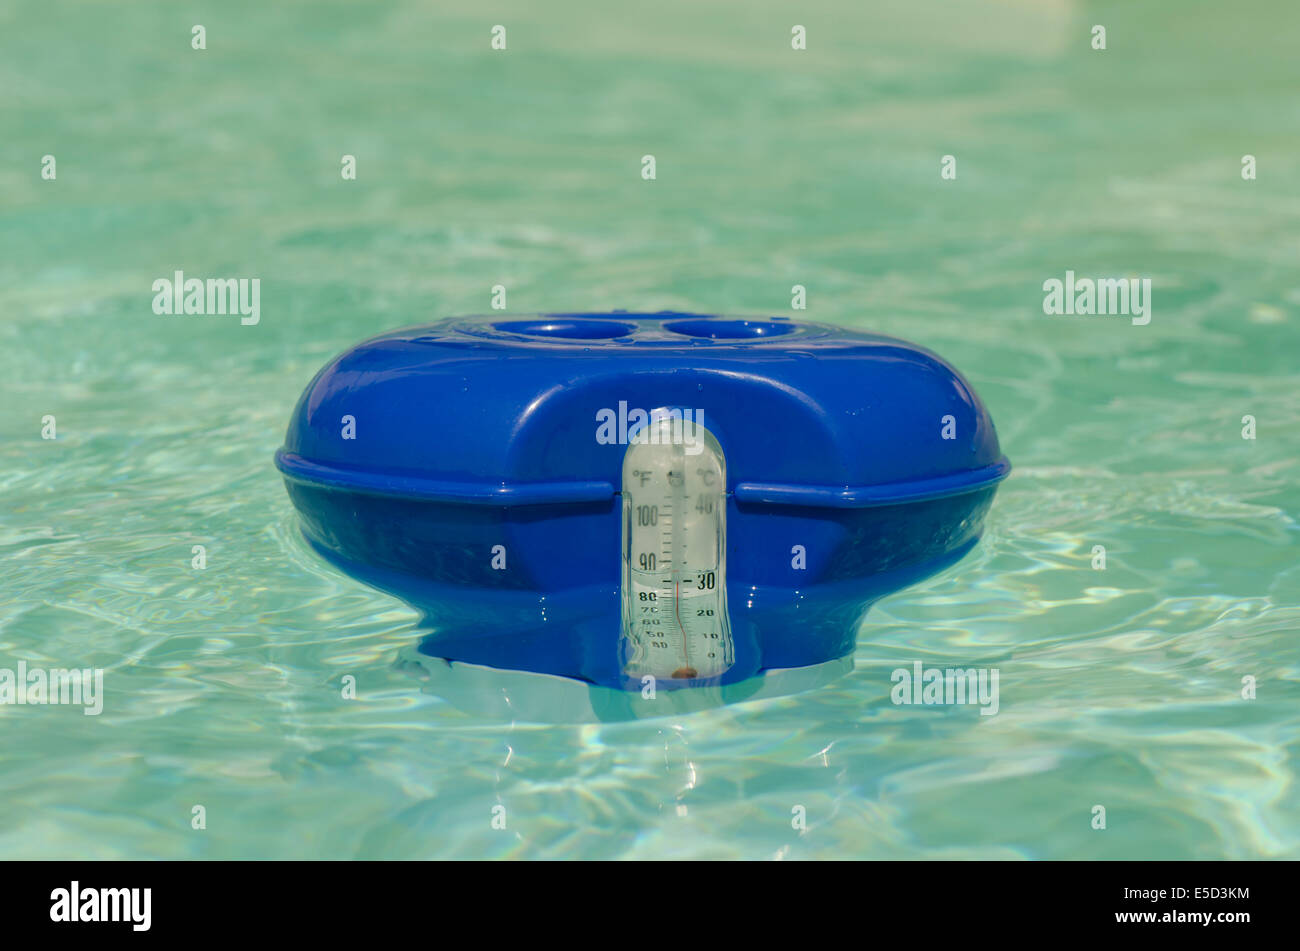 Chlorine container in pool with build in thermometer. Stock Photo